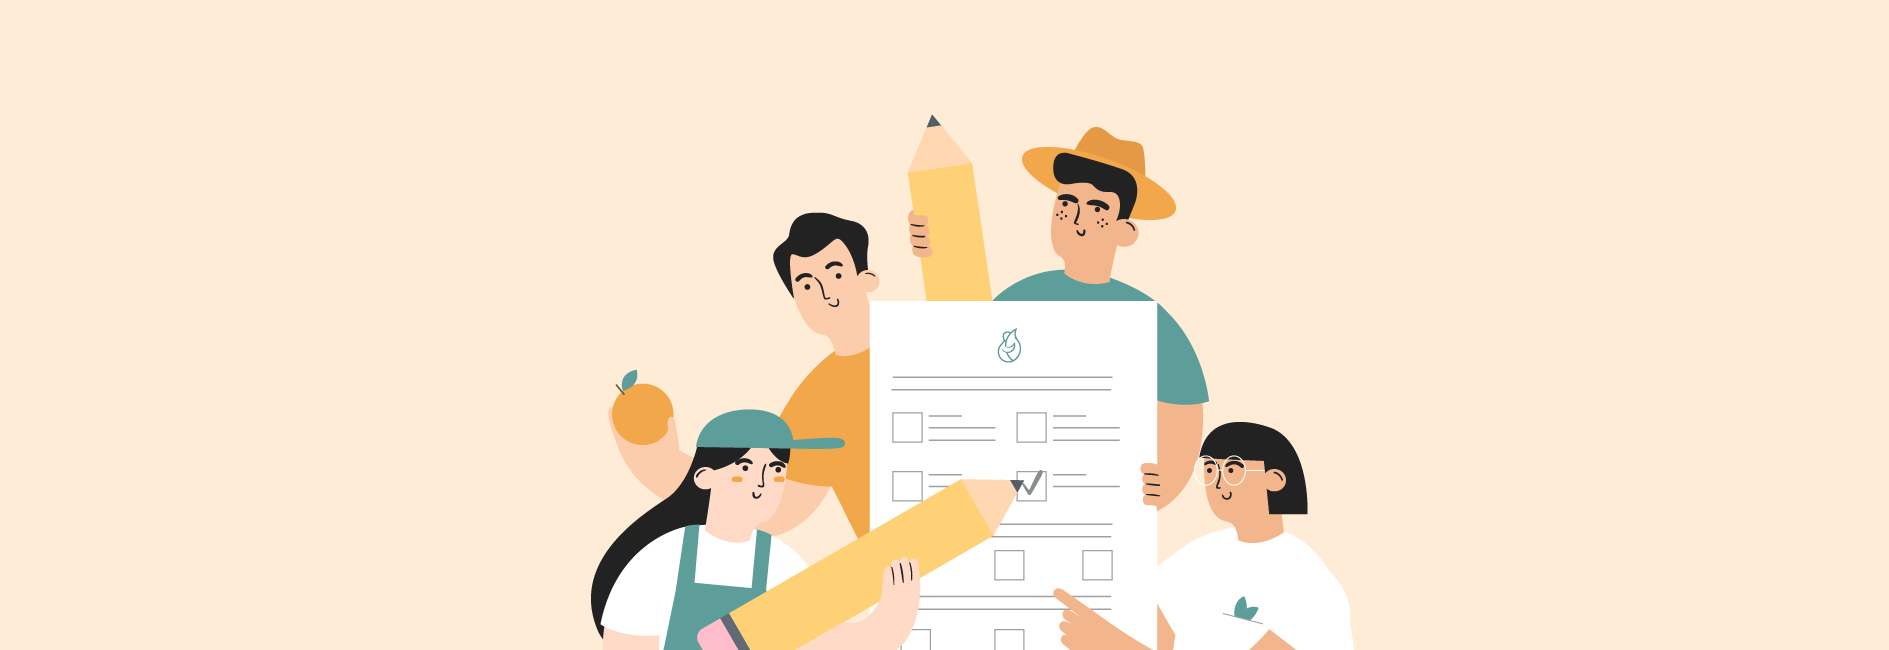 Illustrations of farmers answering the survey on the impact of direct food sales